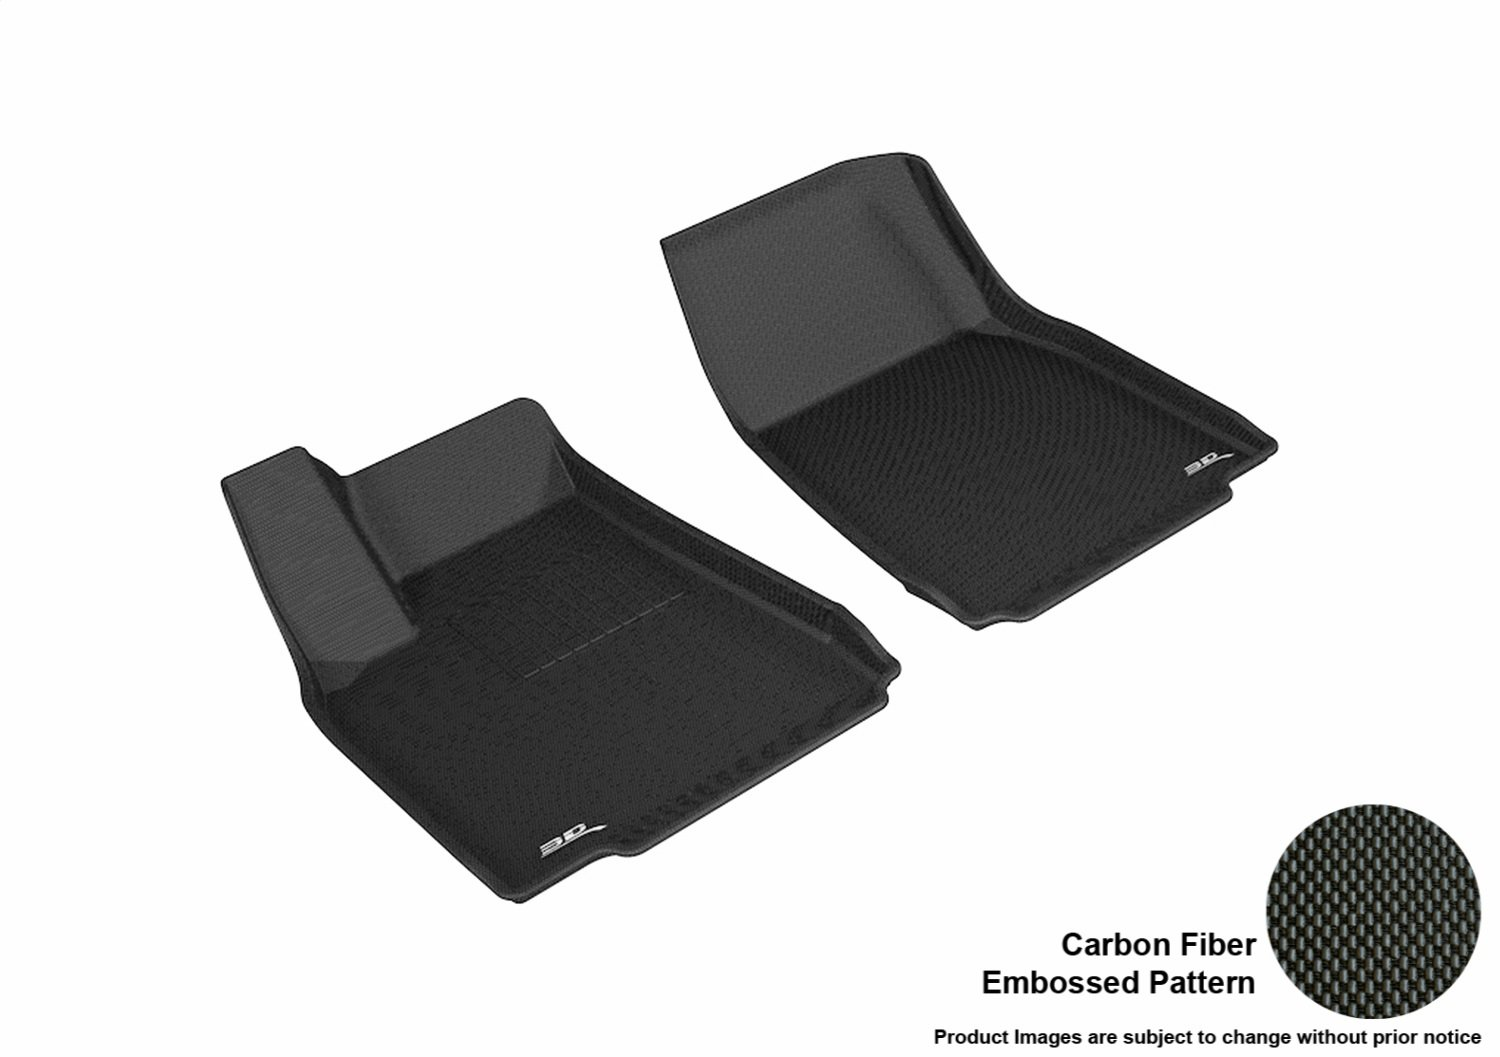 3D MAXpider L1TL00111509 R1 Kagu Floor Mat for Tesla Model X 2016-2017, Black B074VK2D3V